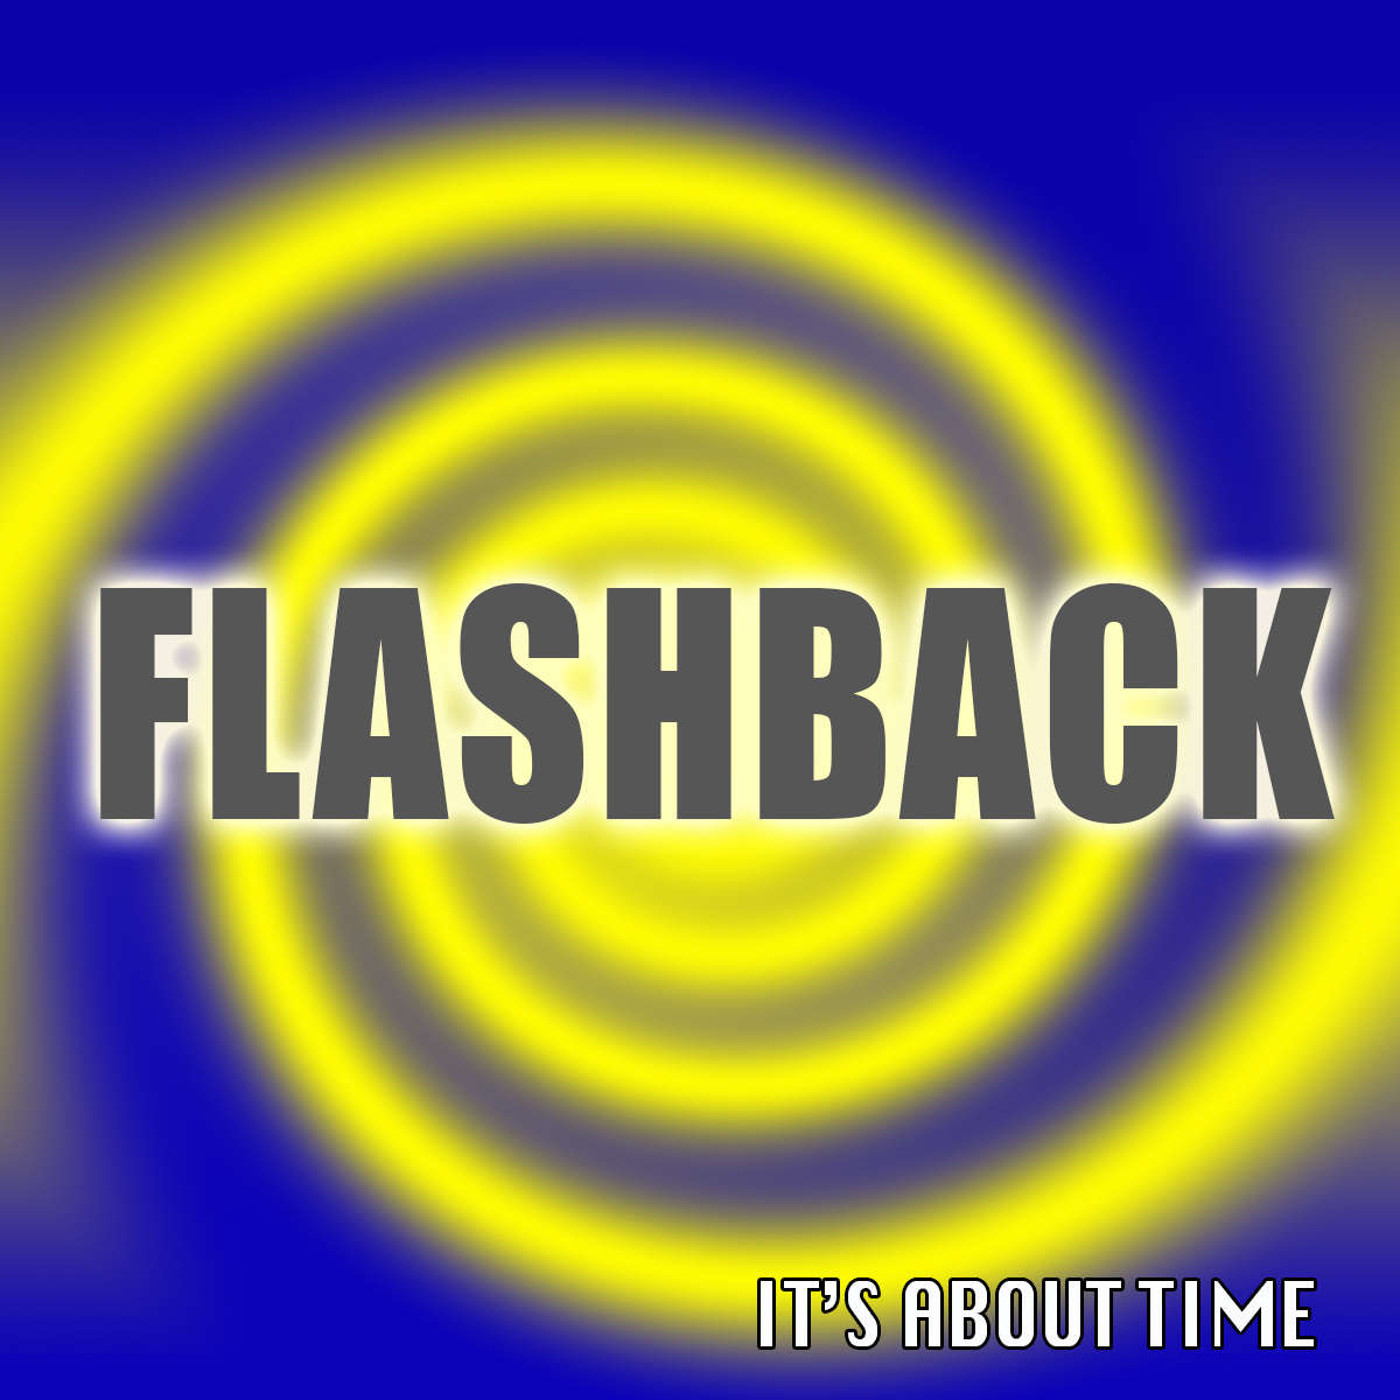 S01E06-Flashback - Travel back in time to when Charlie and Steve first met in this sci-fi comedy